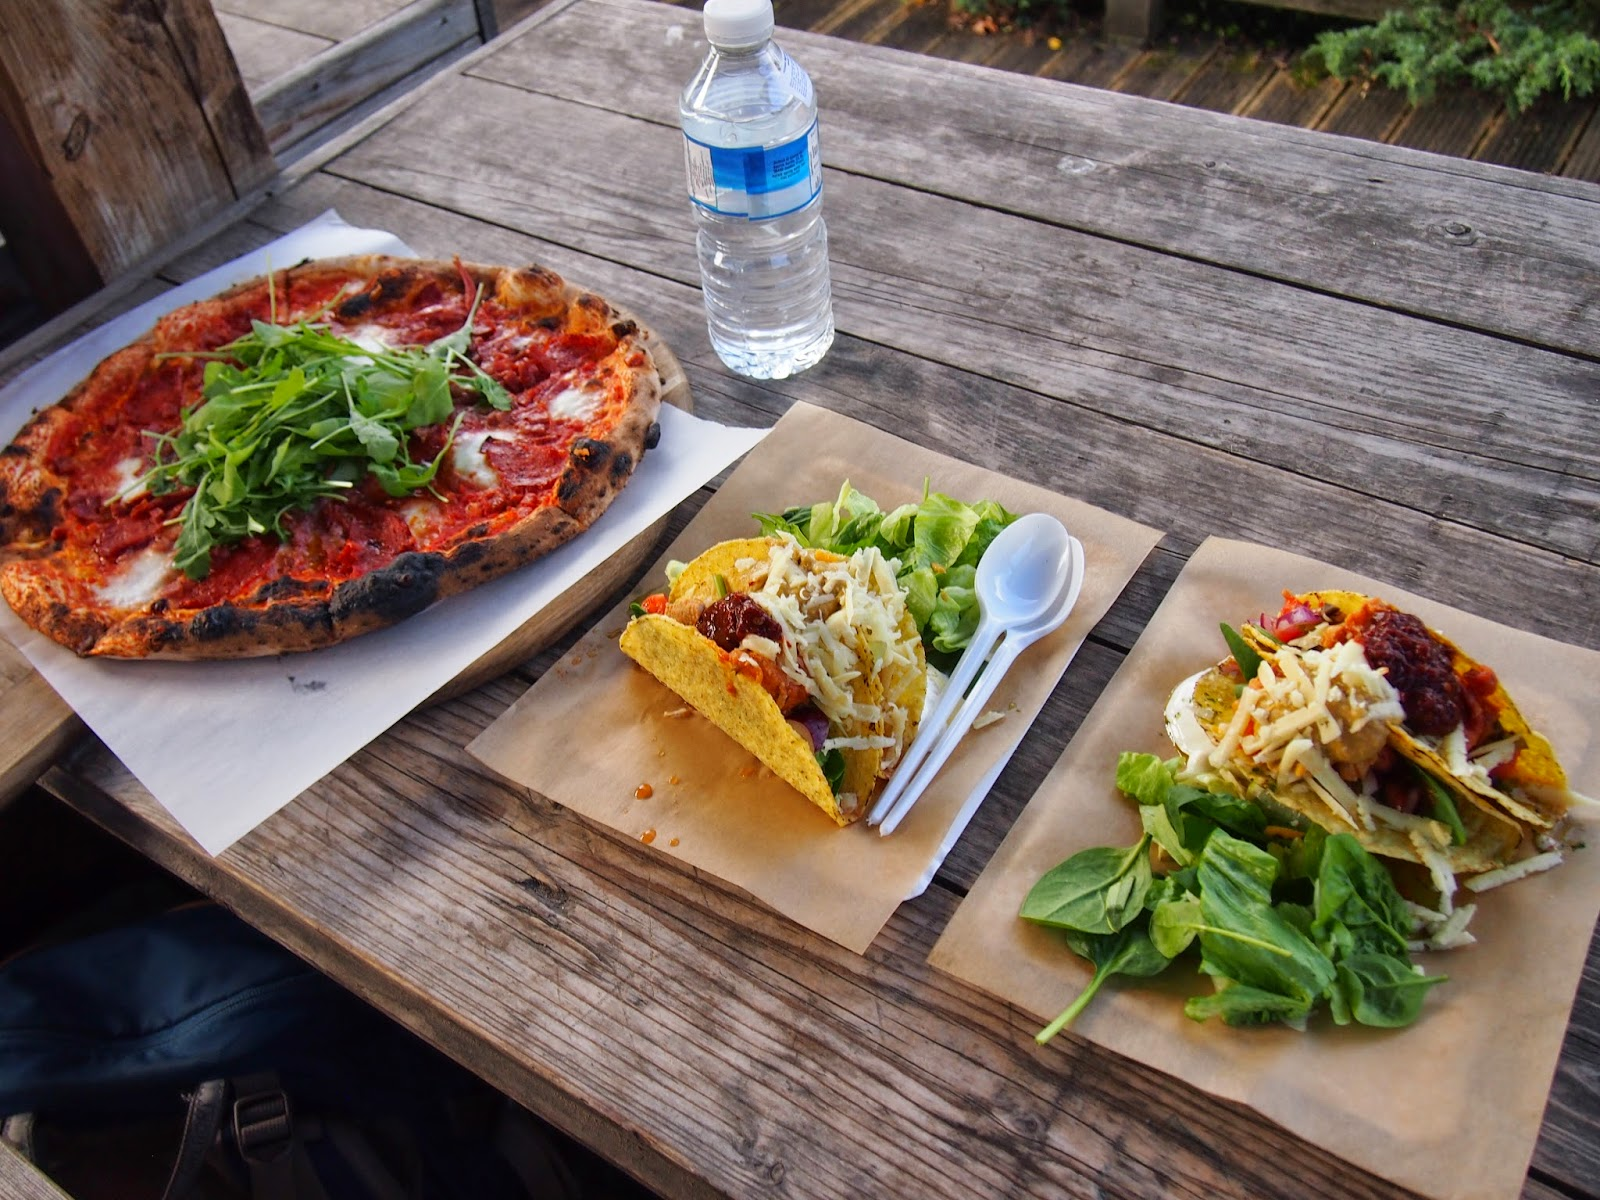 Pizza and tacos from Open Kitchen in Vilnius.